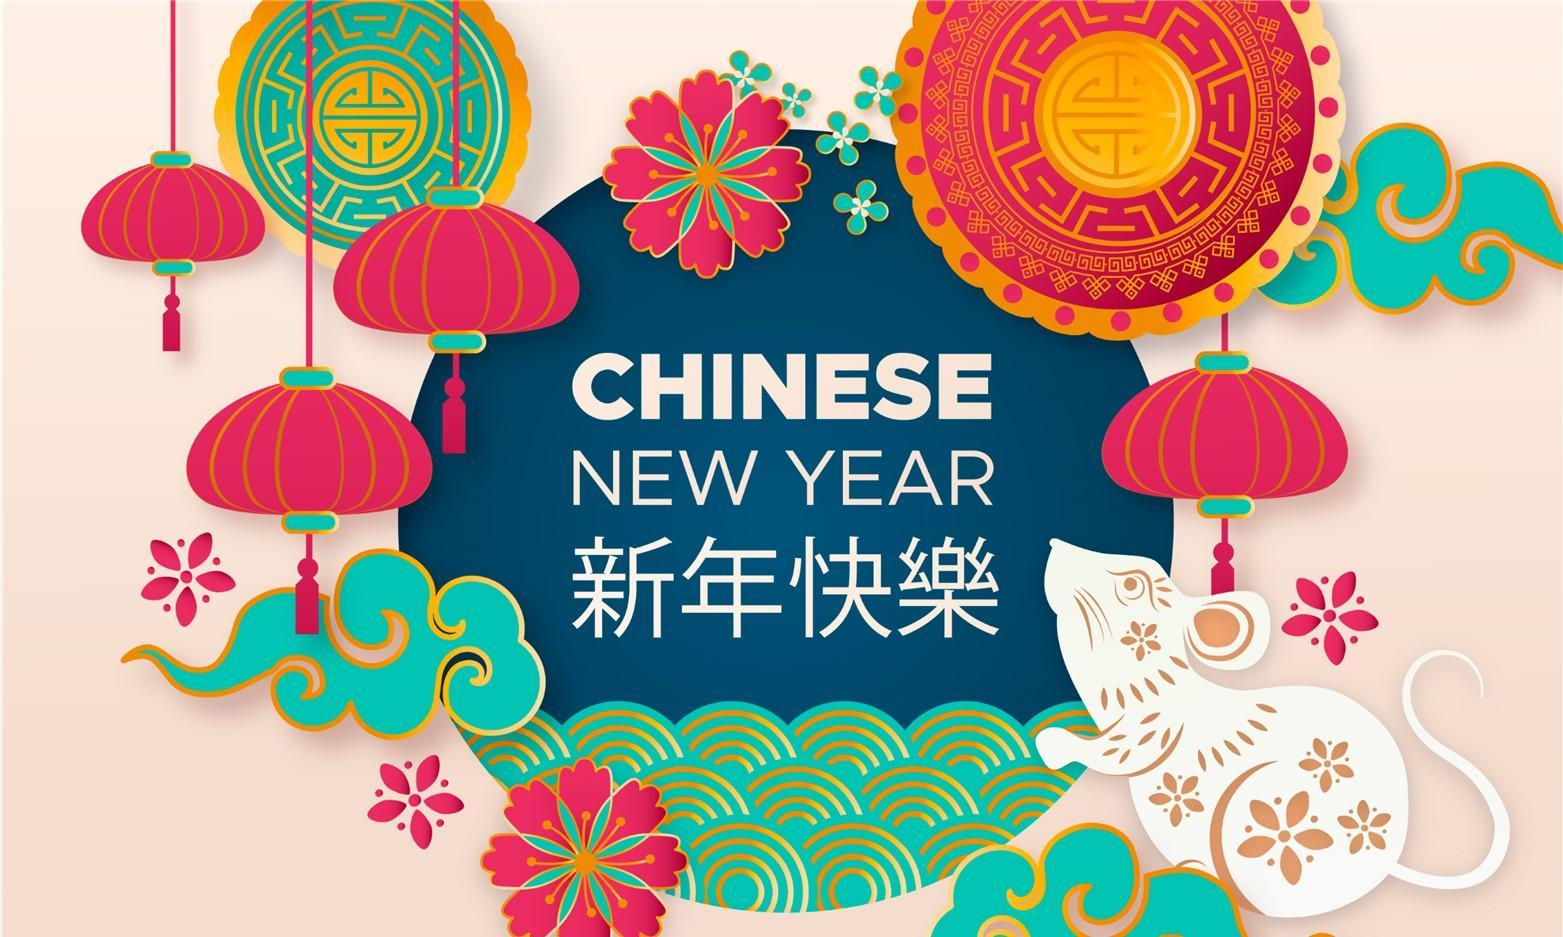 Chinese New Year Family Fun in Swansea